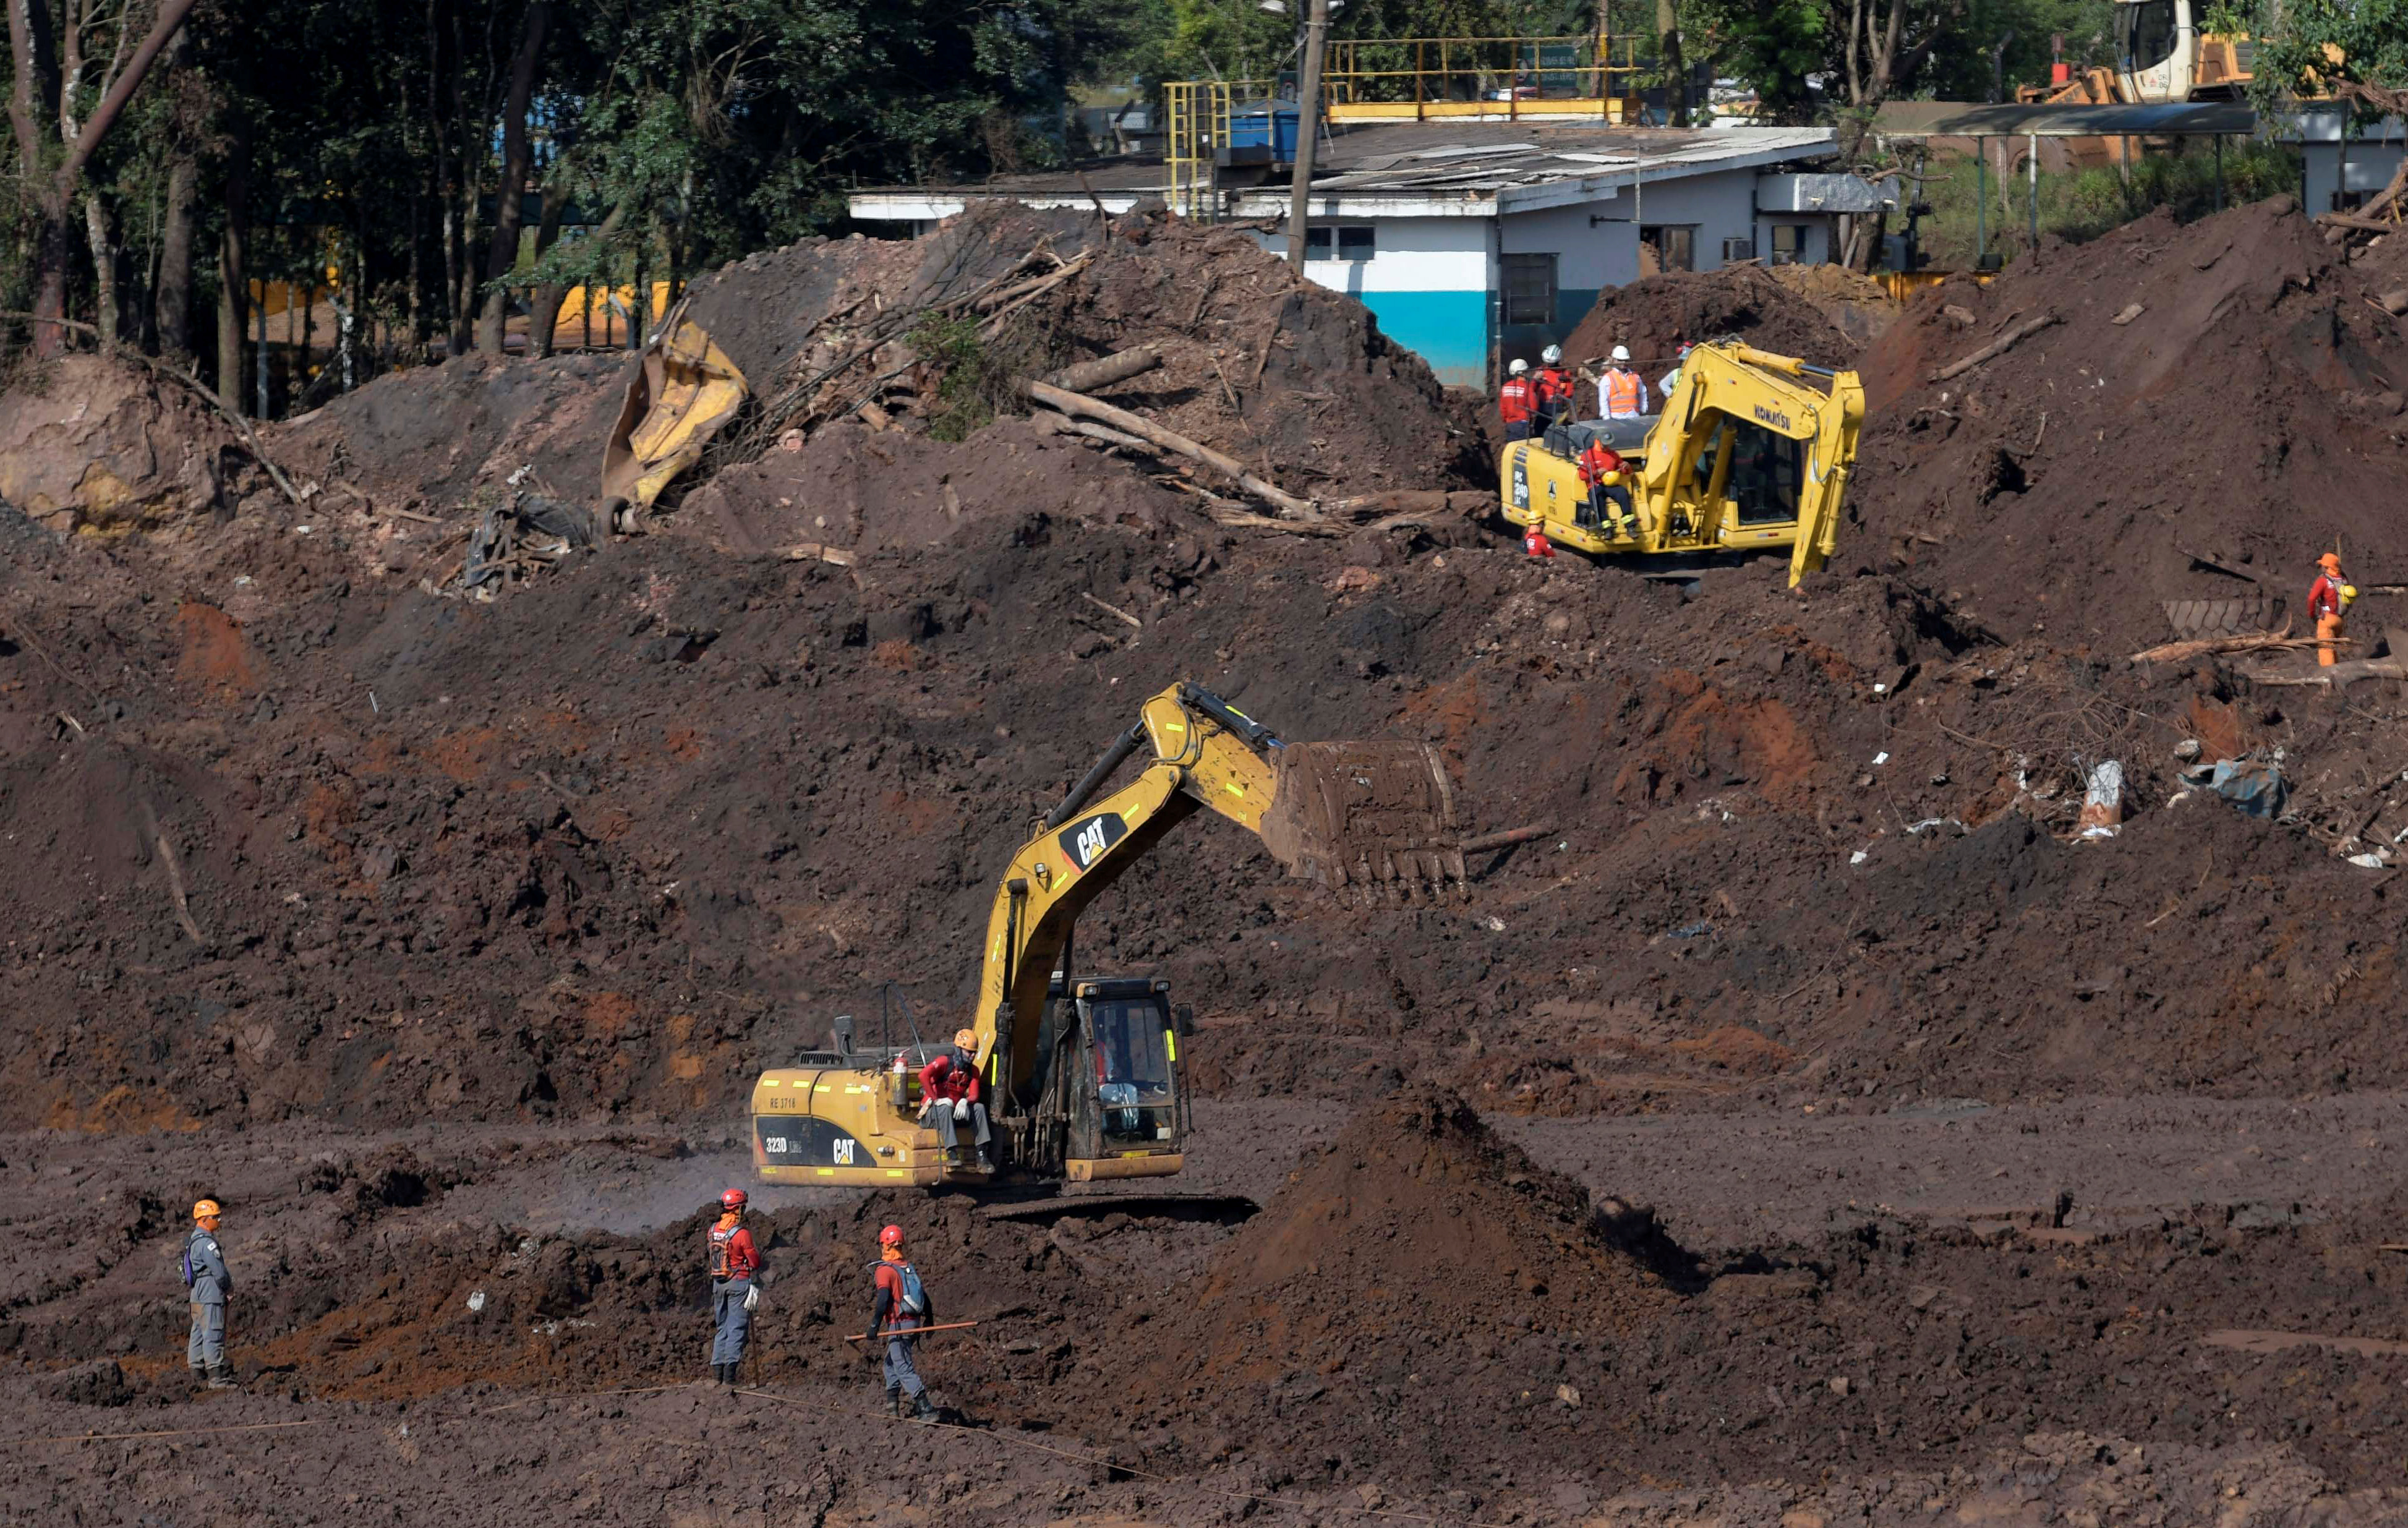 Members of a rescue team search for victims of a collapsed tailings dam owned by Brazilian mining company Vale SA, in Brumadinho, Brazil, Feb. 10, 2019.